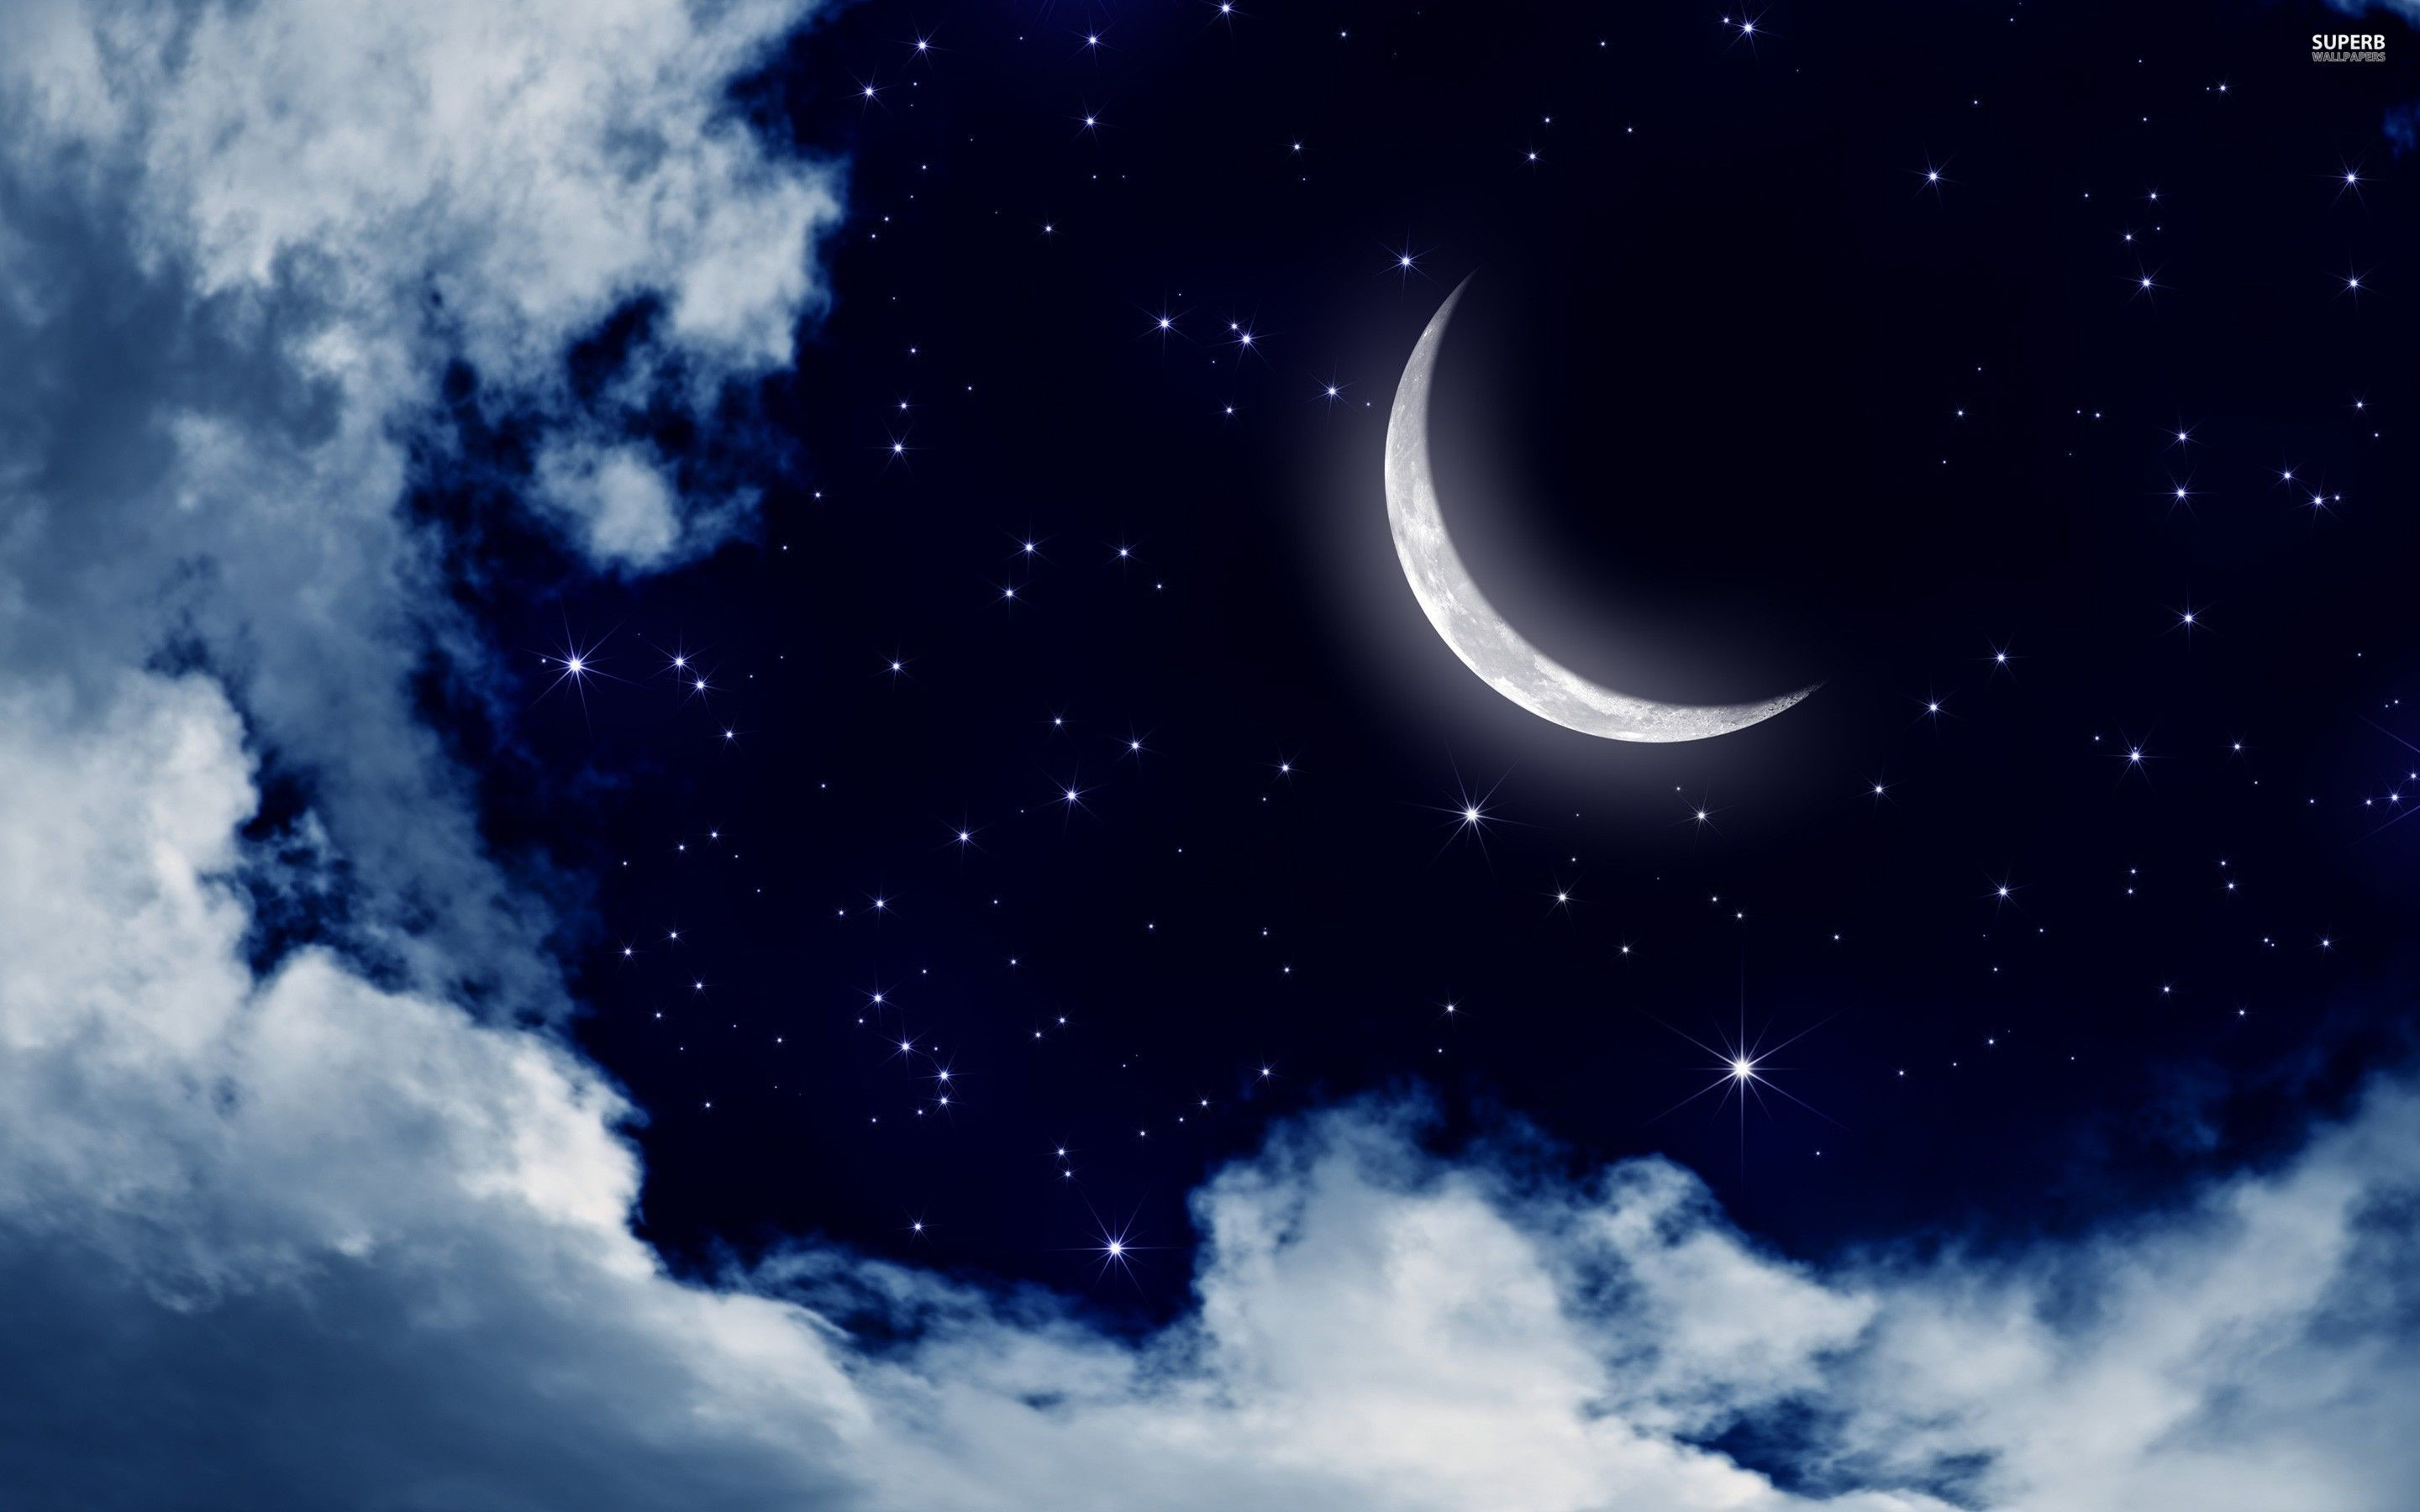 Moon and stars in the sky wallpaper – Digital Art wallpapers – #25176